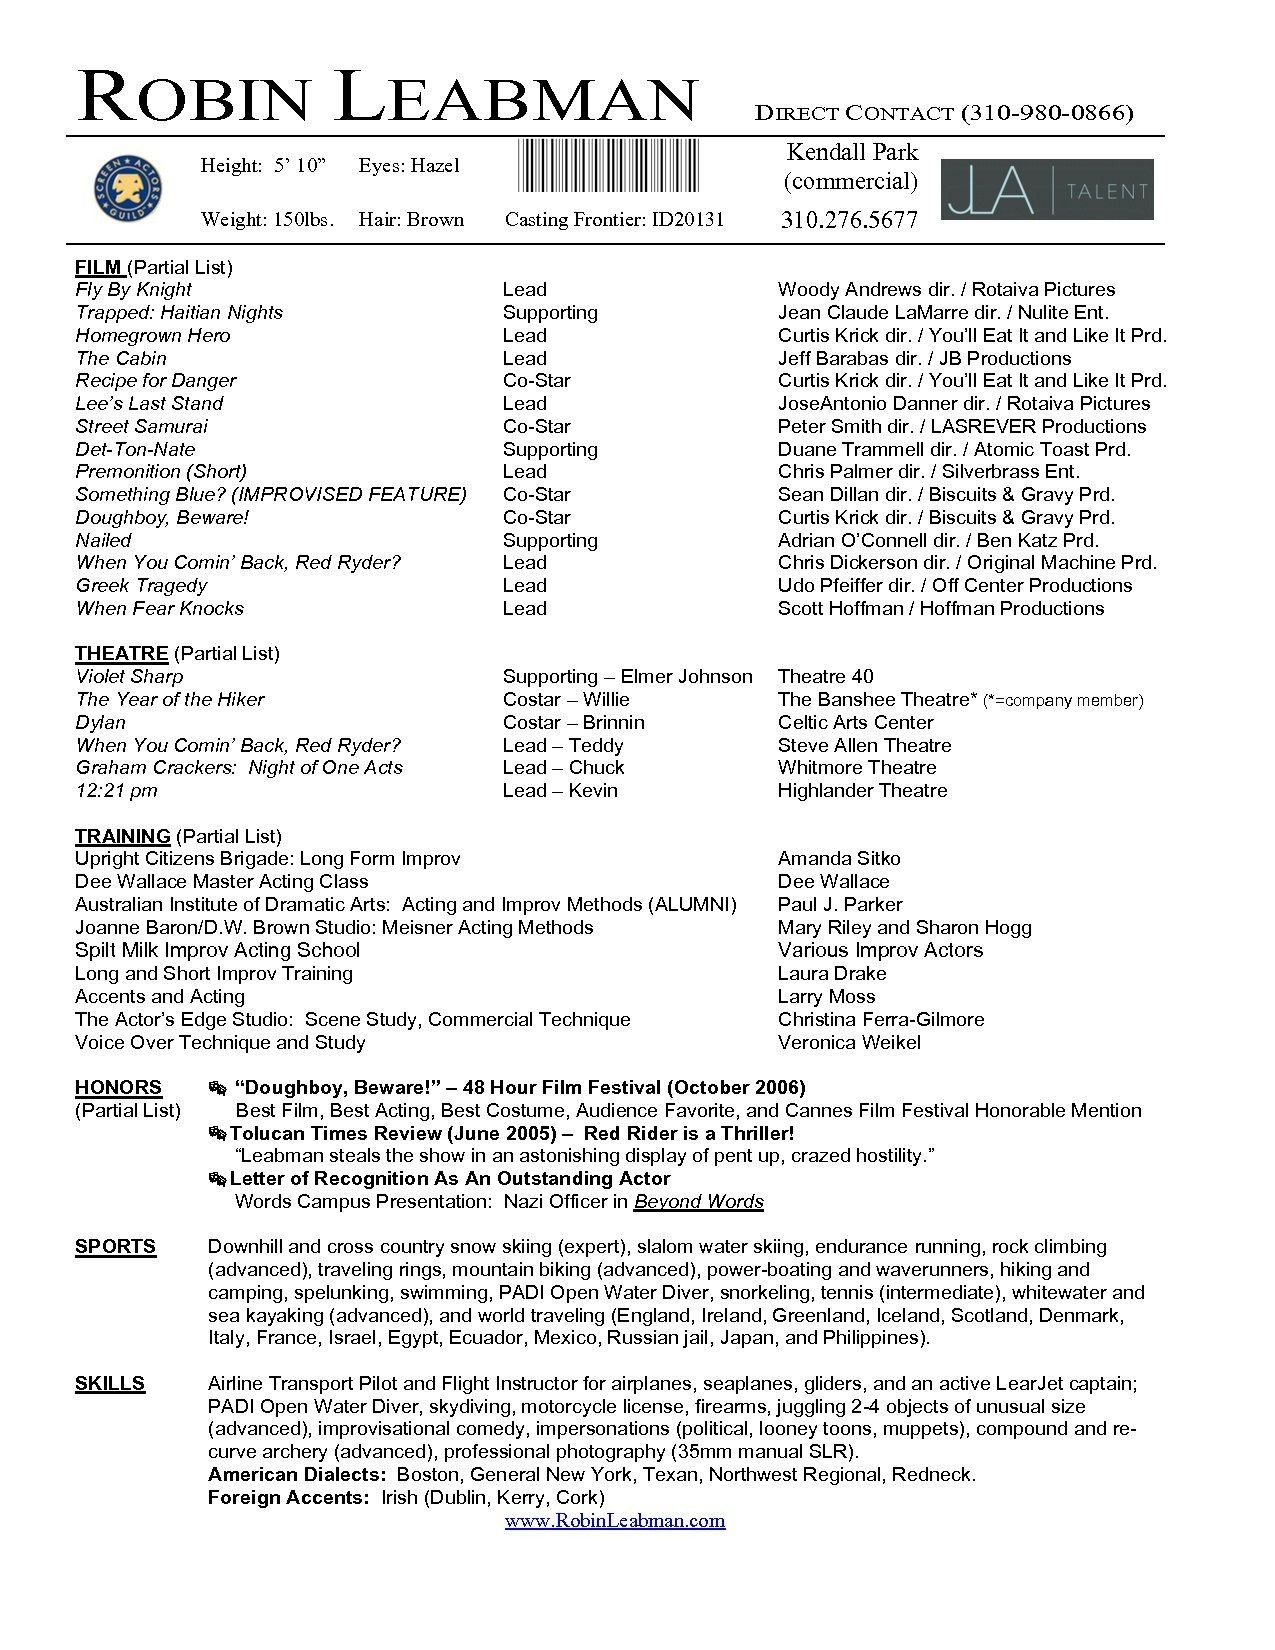 lovely acting resume template for microsoft word modern cv doc free download it director examples tailor sample